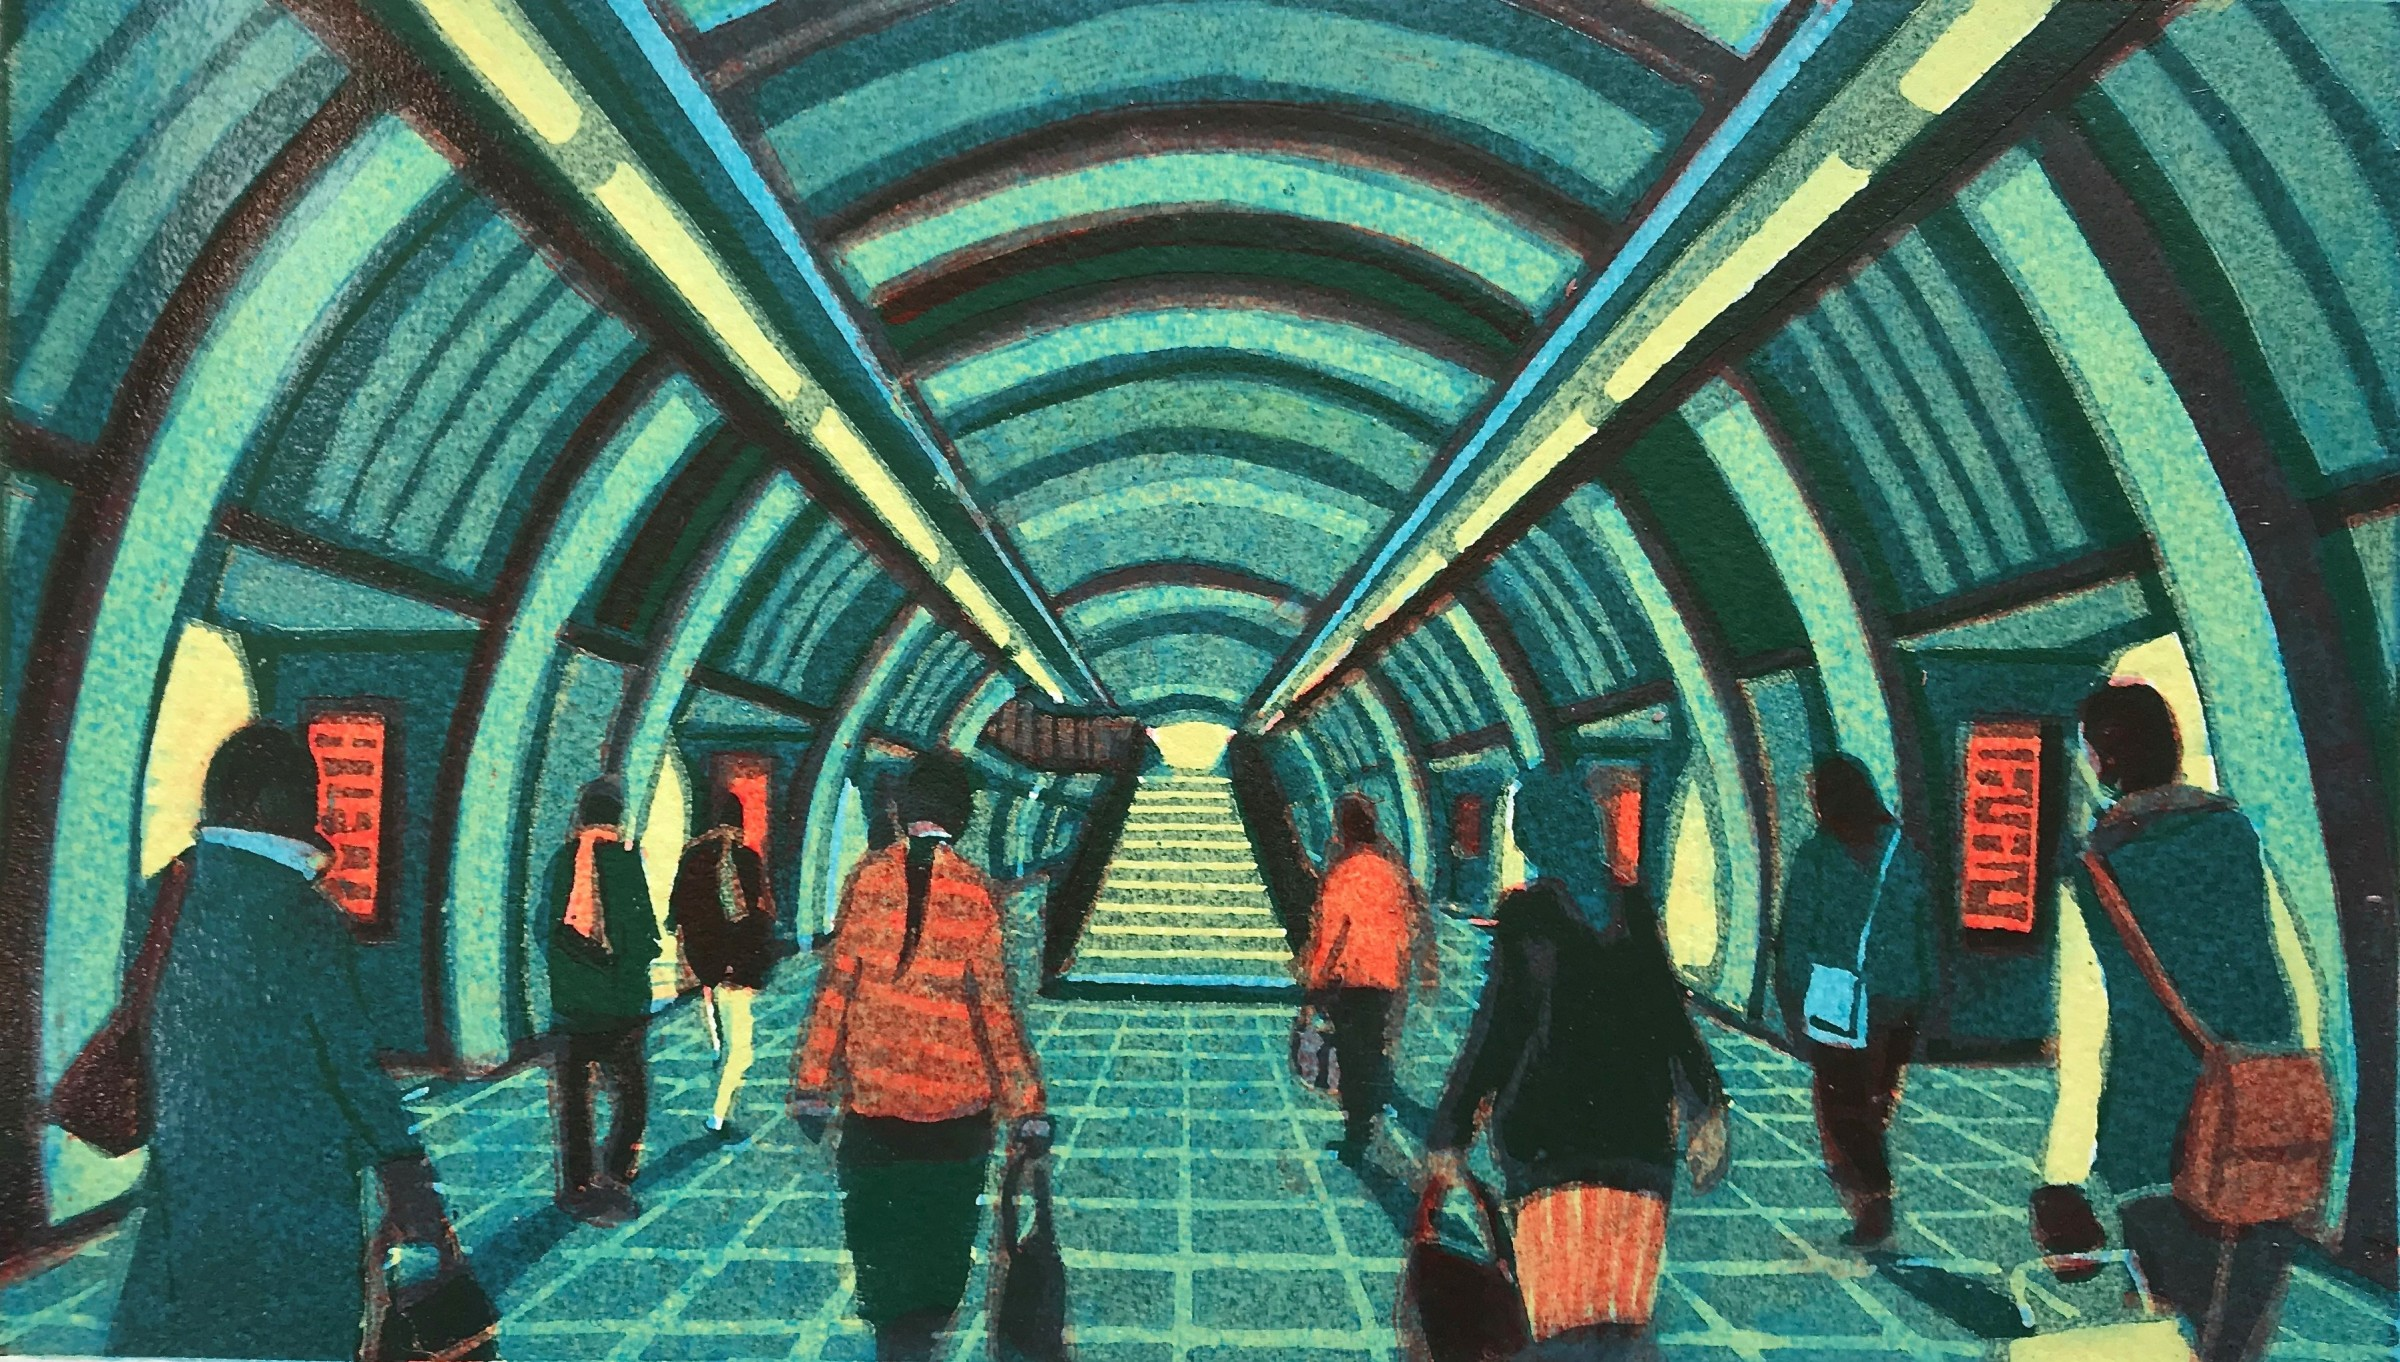 "<span class=""link fancybox-details-link""><a href=""/exhibitions/11/works/image_standalone127/"">View Detail Page</a></span><p>GAIL BRODHOLT RE</p><p> </p><p><em>London Bridge Underground</em>, 2017</p><p>linocut</p><p>Inspired by Philip Thomas Langford Reeves RE</p><p> </p><p>Part of the Print REbels Portfolio</p><p> </p><p>""<b>Philip Thomas Langford Reeves PPRSW RSA RE (1931-2017) </b>portrays the gritty smoky station of the '50s. Mine is contemporary, brighter, but more streamlined and hygienic. Reeves' figures are conformist, mine modernistically individual. Despite the temporal differences, basically we are the same; a metaphor for a changing London.""</p><p> </p><p> </p>"